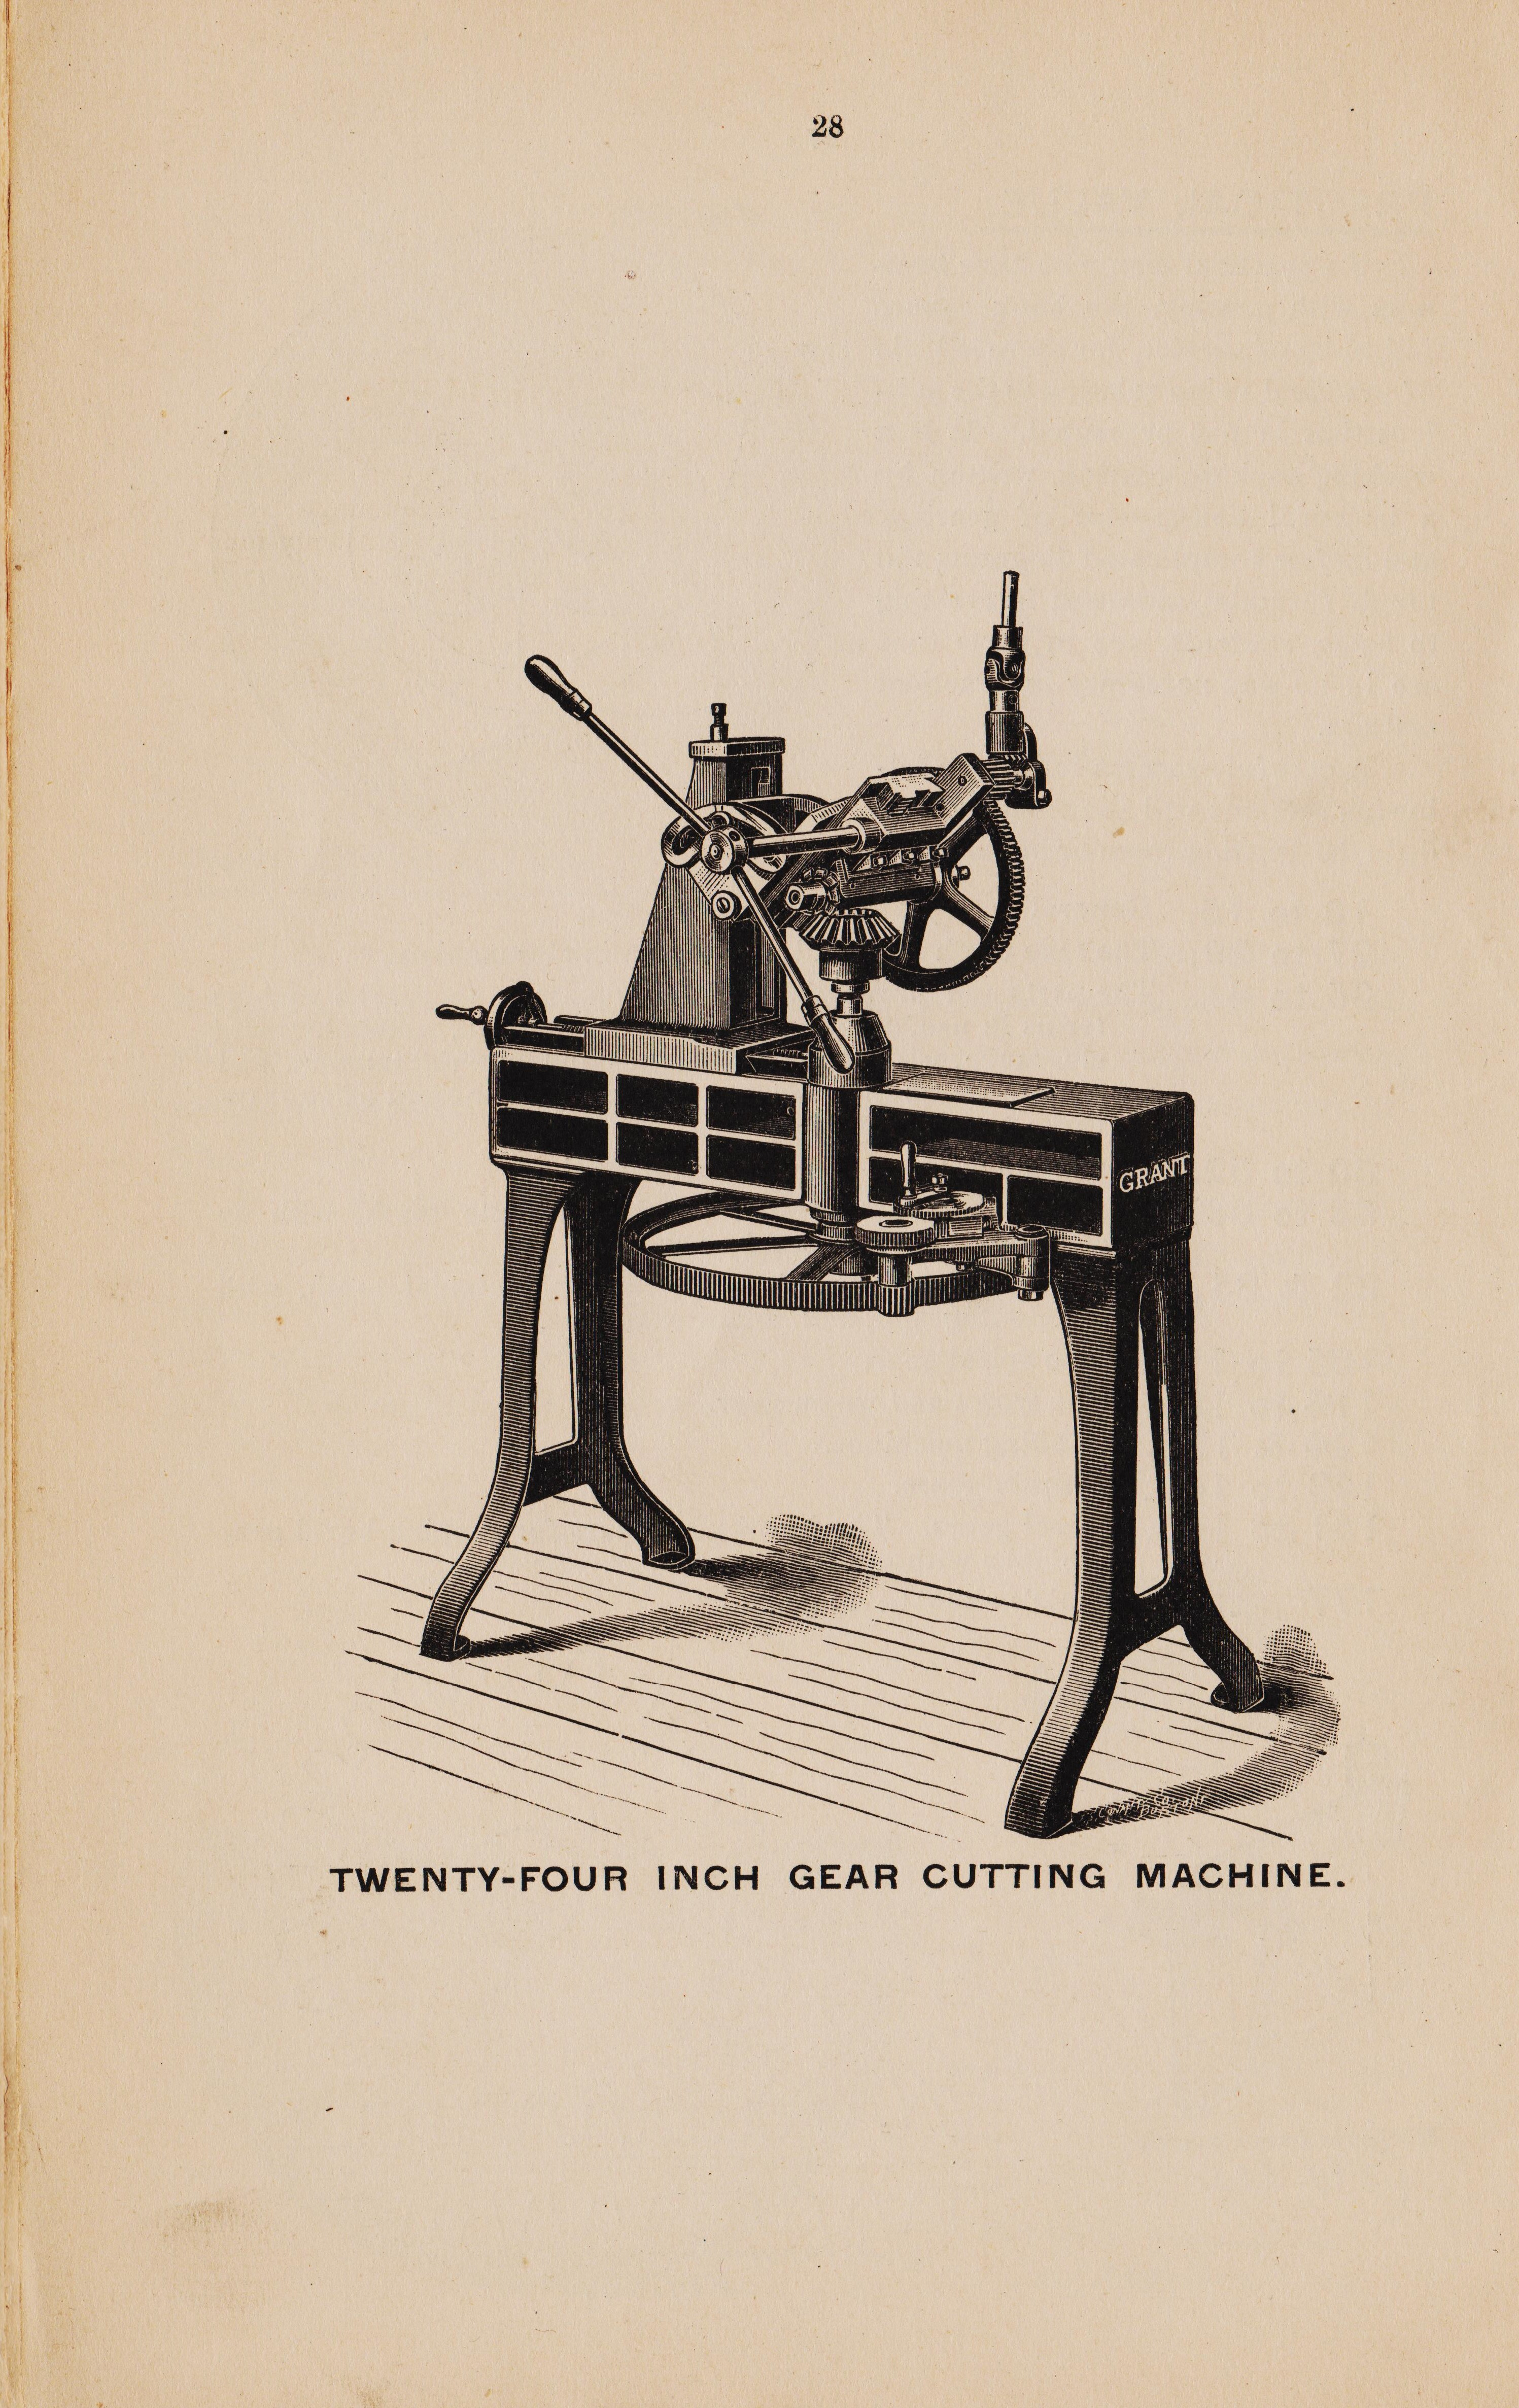 http://antiquemachinery.com/images-2020/Gear-Grant-Winton-24-Inch-Gear-Cutting-_Machine-1892.jpg